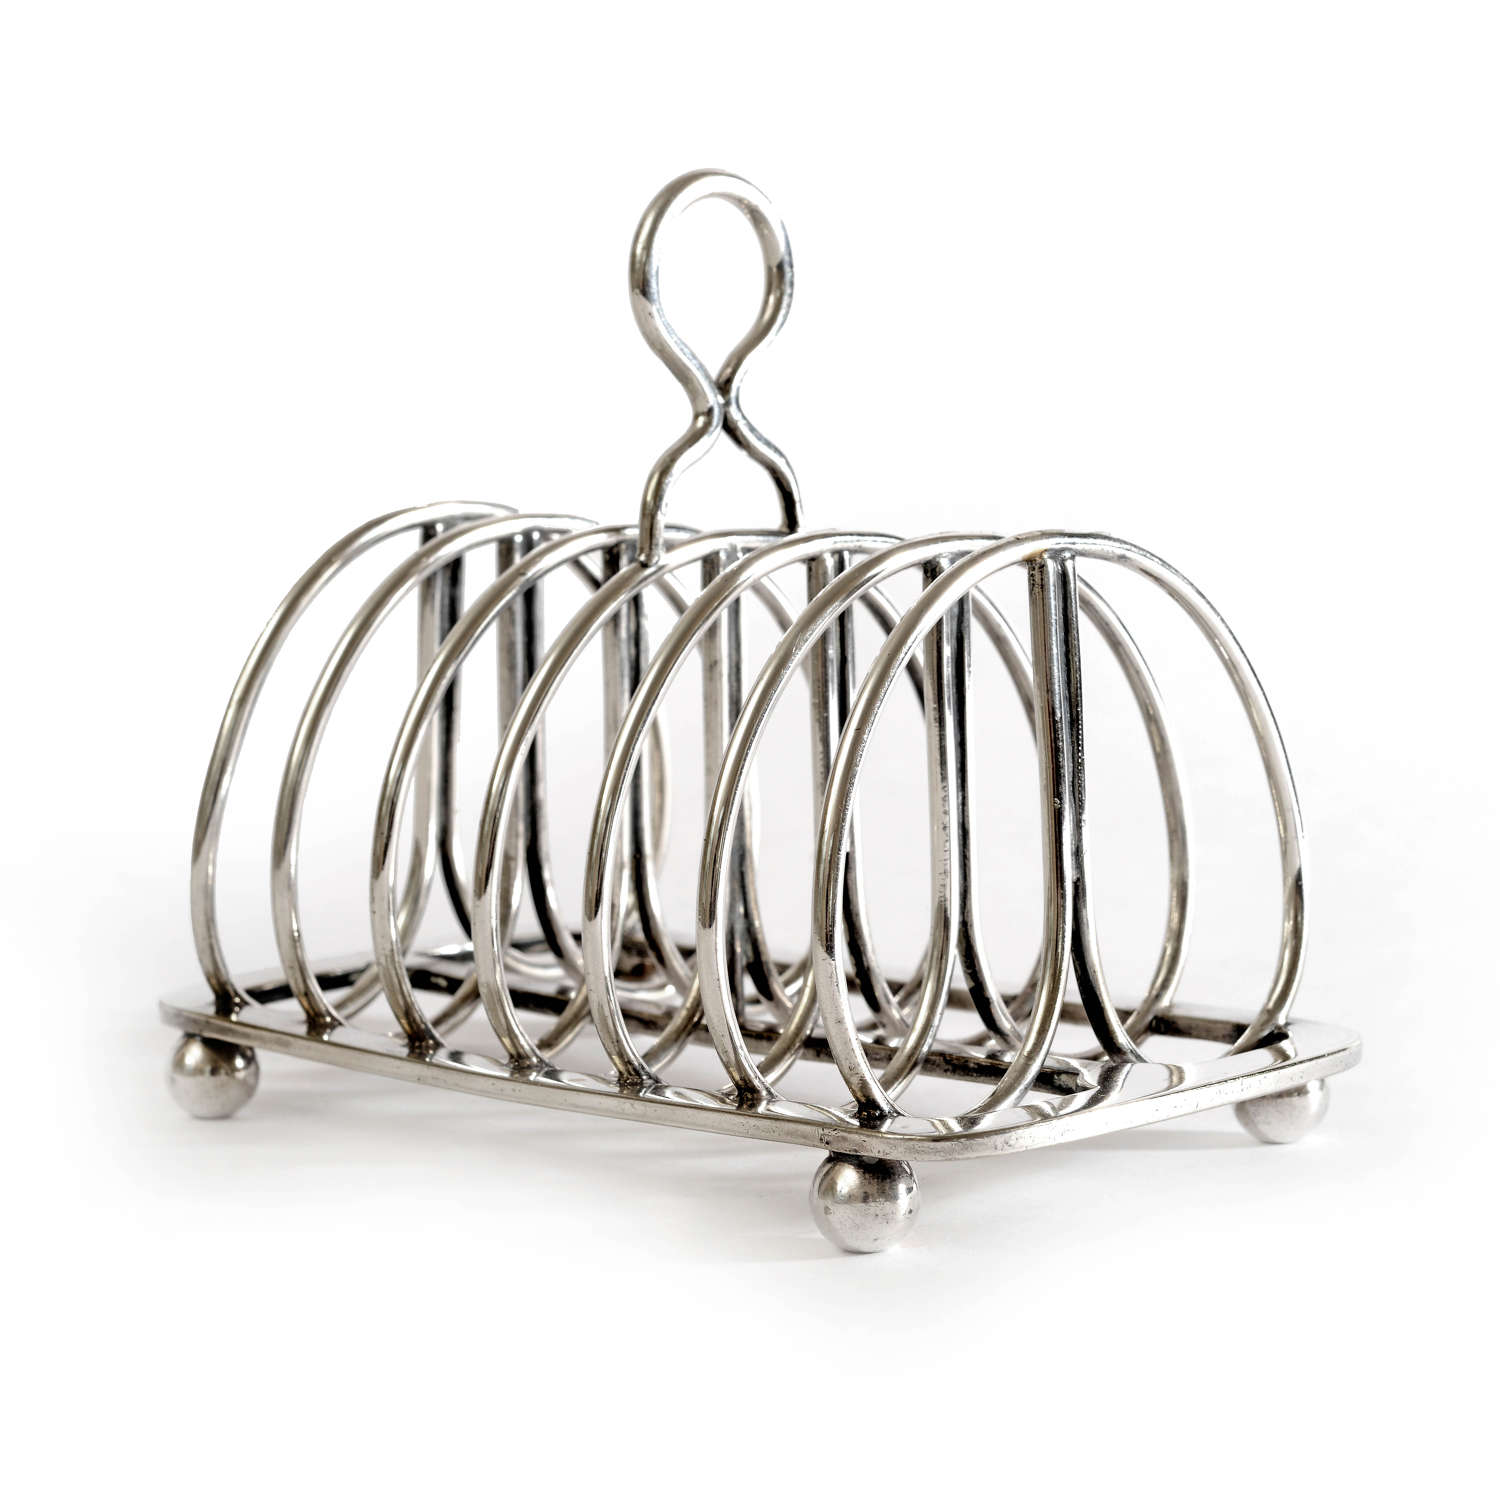 19th century silver plated toast rack